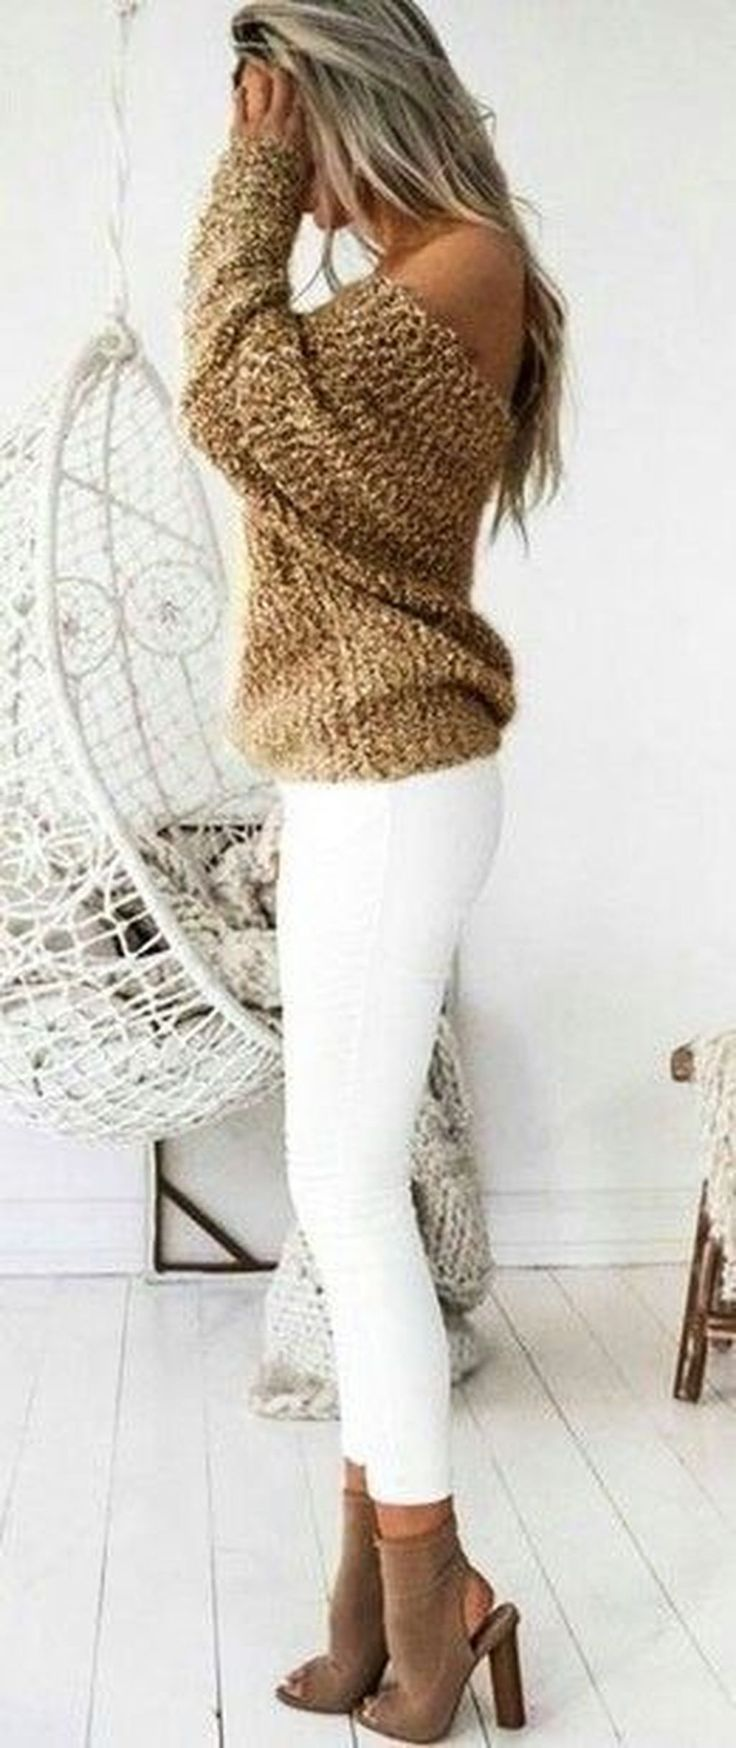 Nice 52 Cute Outfits Ideas To Wear During Spring. More at https://trendwear4you.com/2018/02/23/52-cute-outfits-ideas-wear-spring/